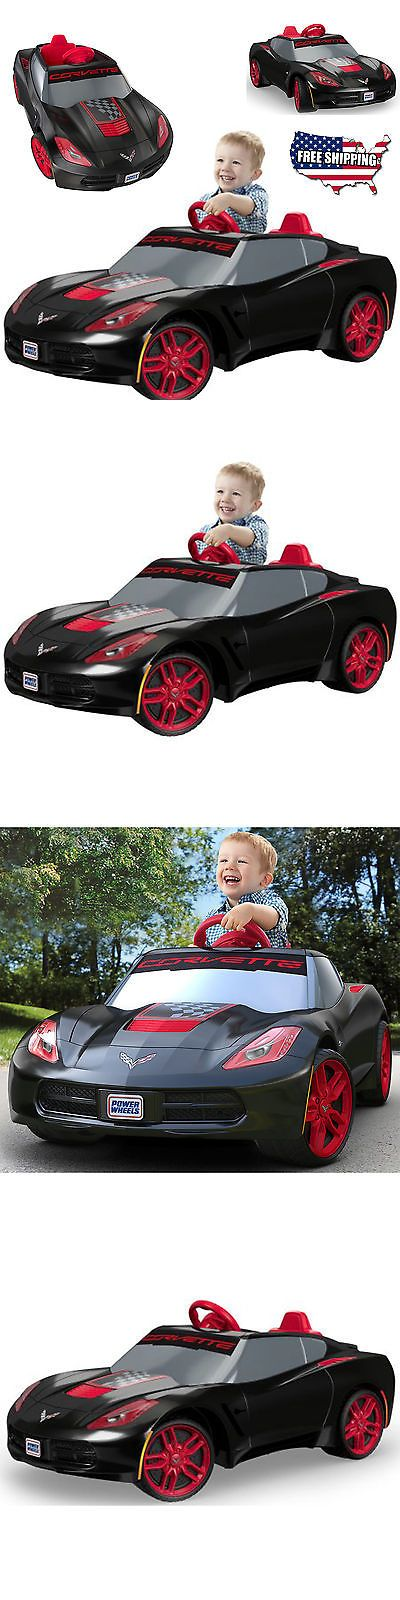 Ride On Toys and Accessories 145944: Kids Ride On Car Corvette Power Wheels Electric Black Red Rims Stingray Toy 6V -> BUY IT NOW ONLY: $126.37 on eBay!